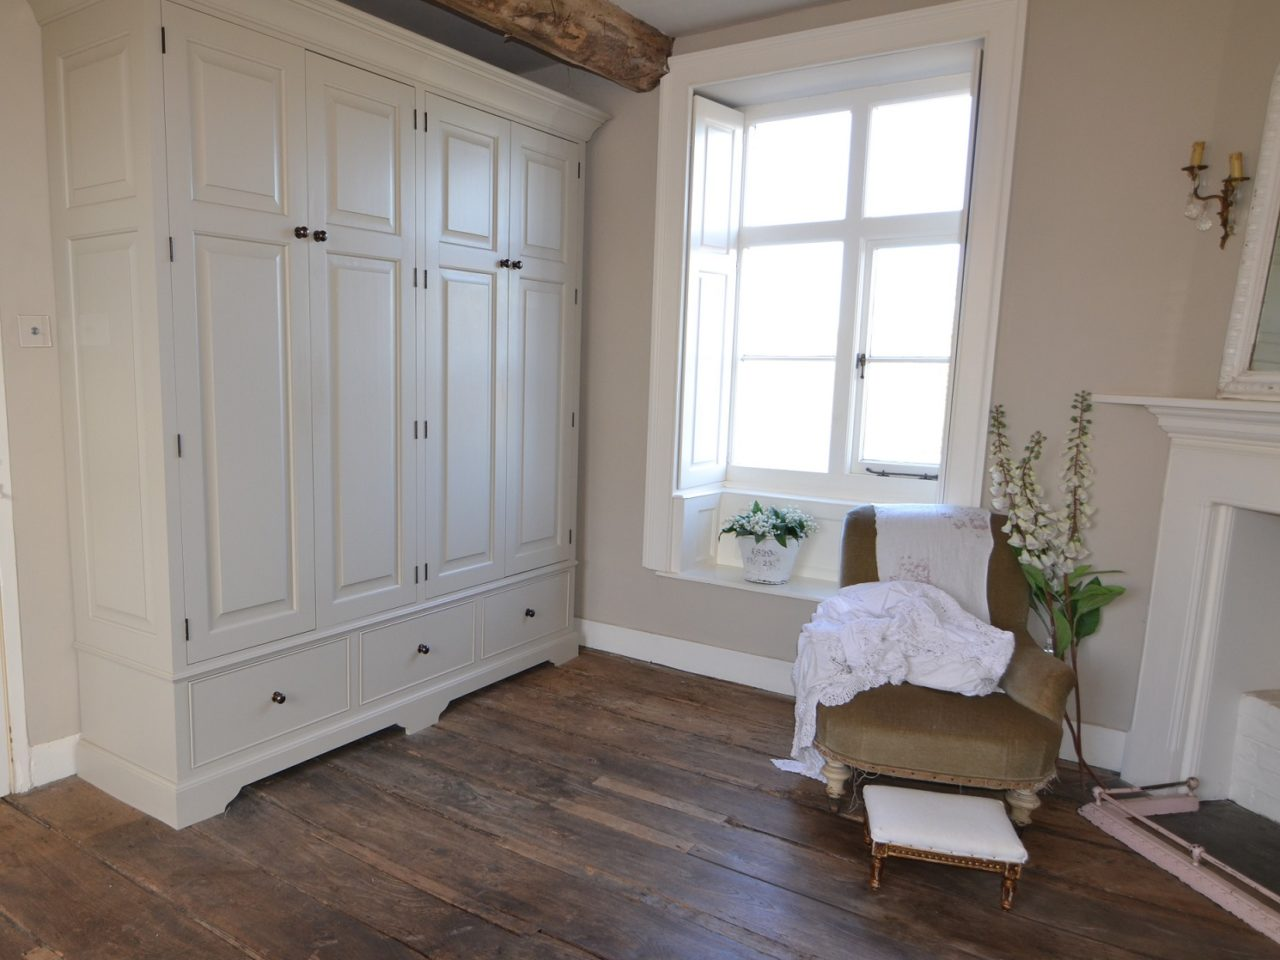 Fitted bedroom wardrobes in period property